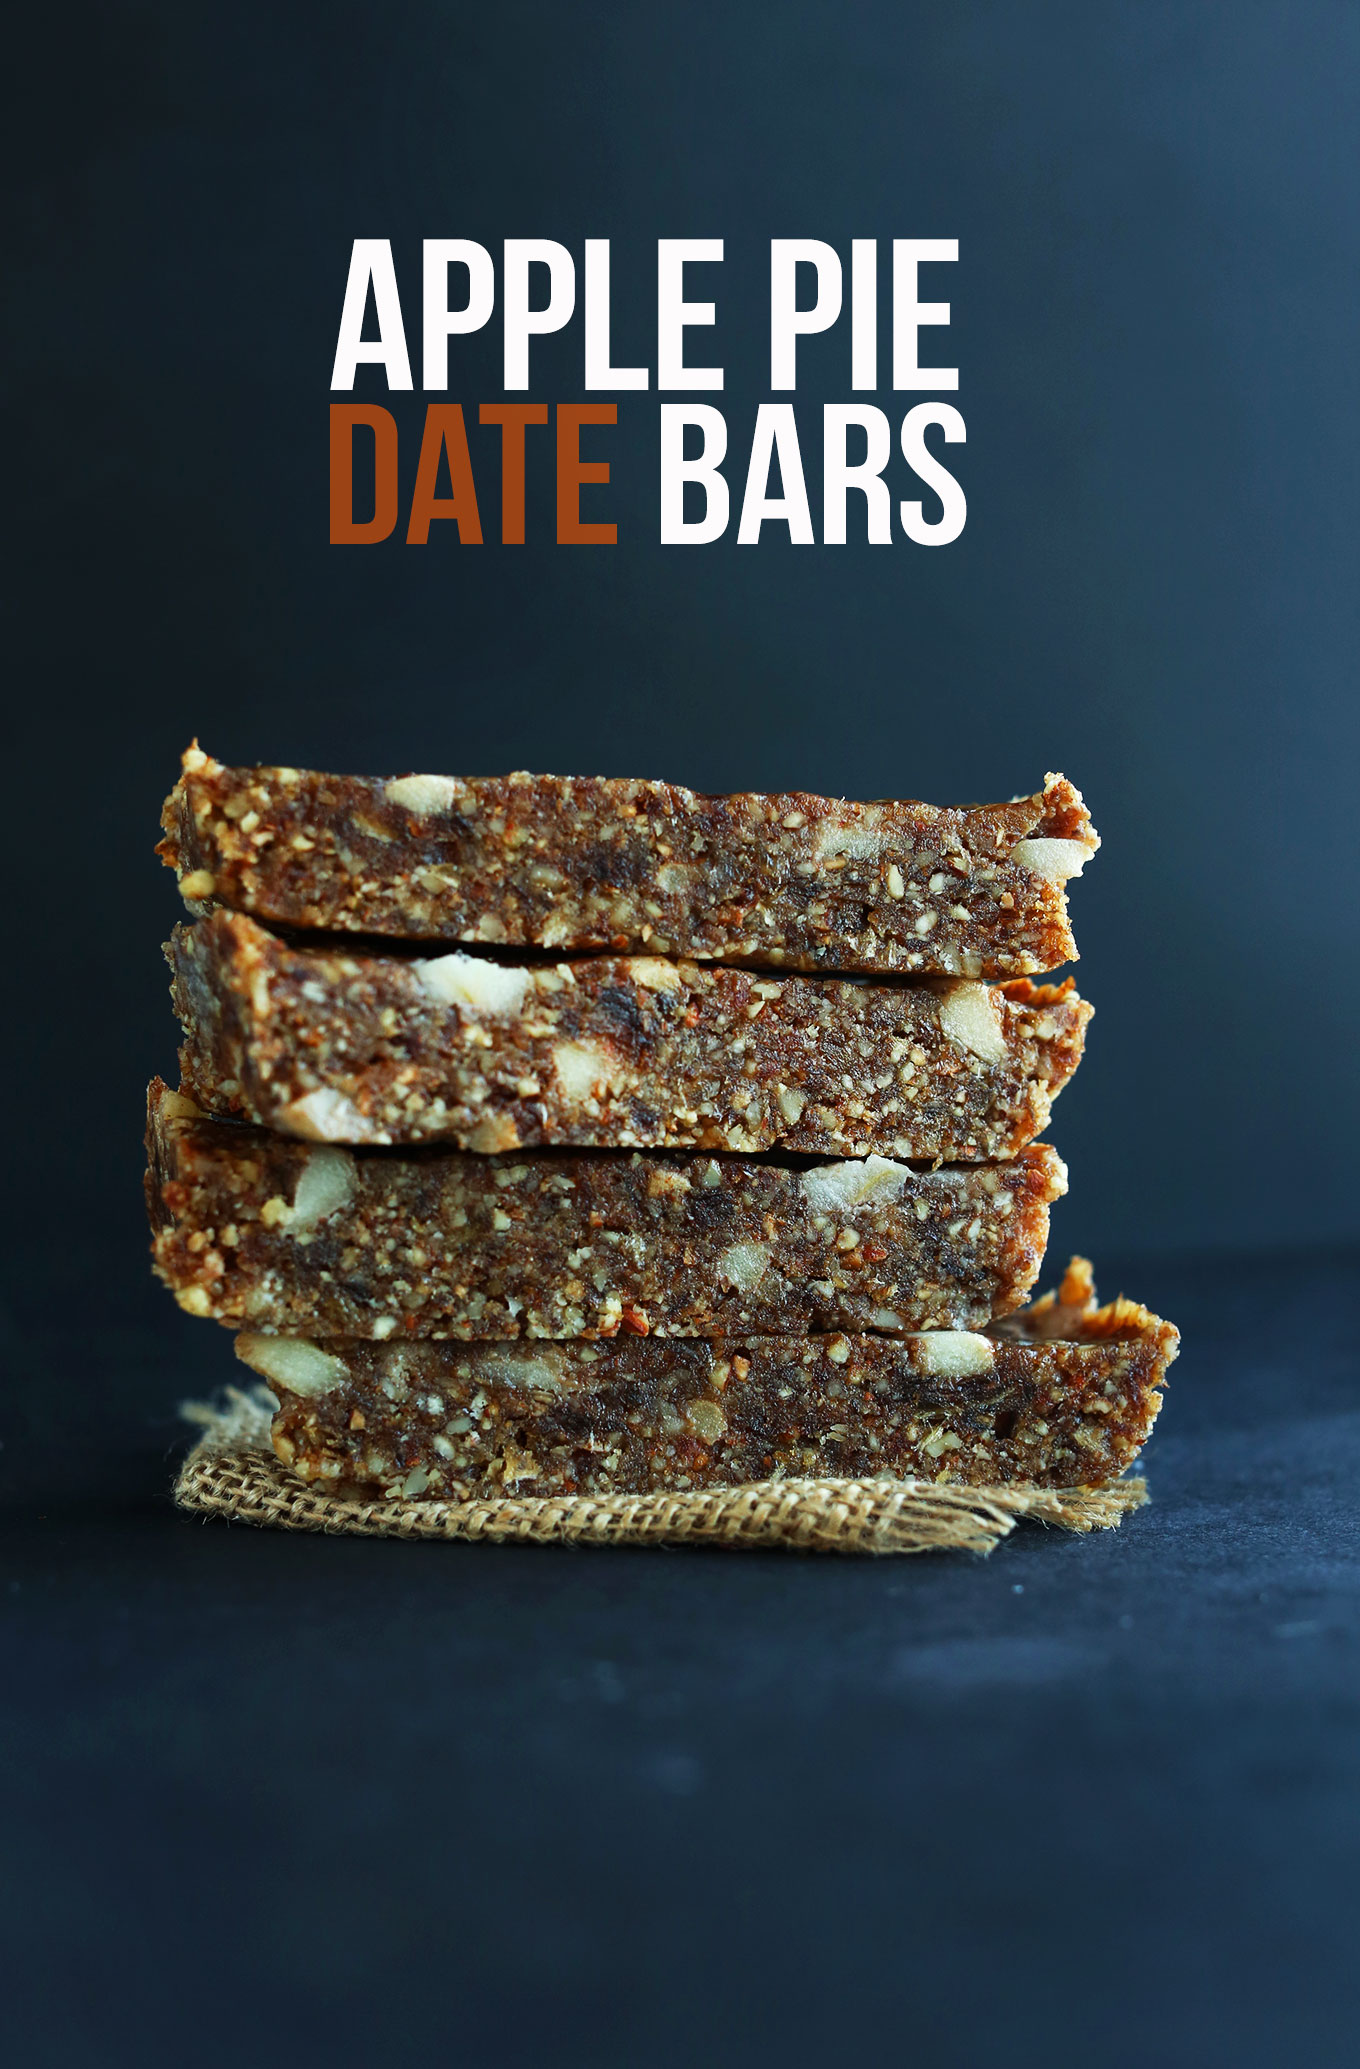 Apple Pie Date Bars stacked up for a healthy gluten-free vegan snack